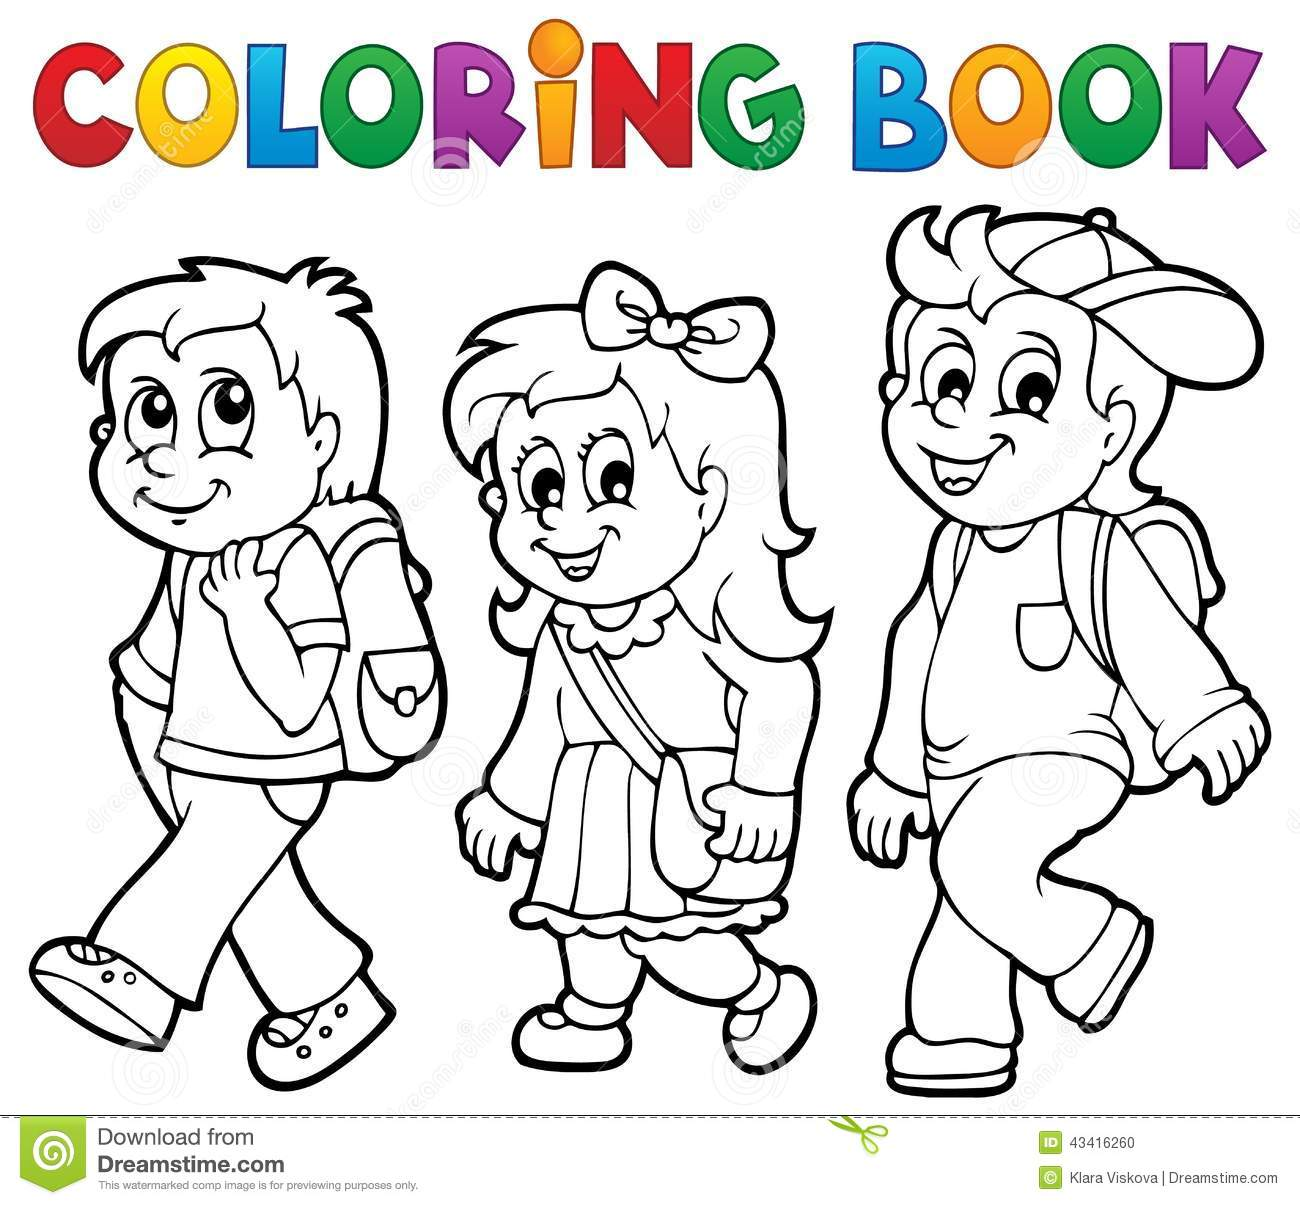 funny children coloring book corruptions 26 kids coloring book - Children Coloring Pictures